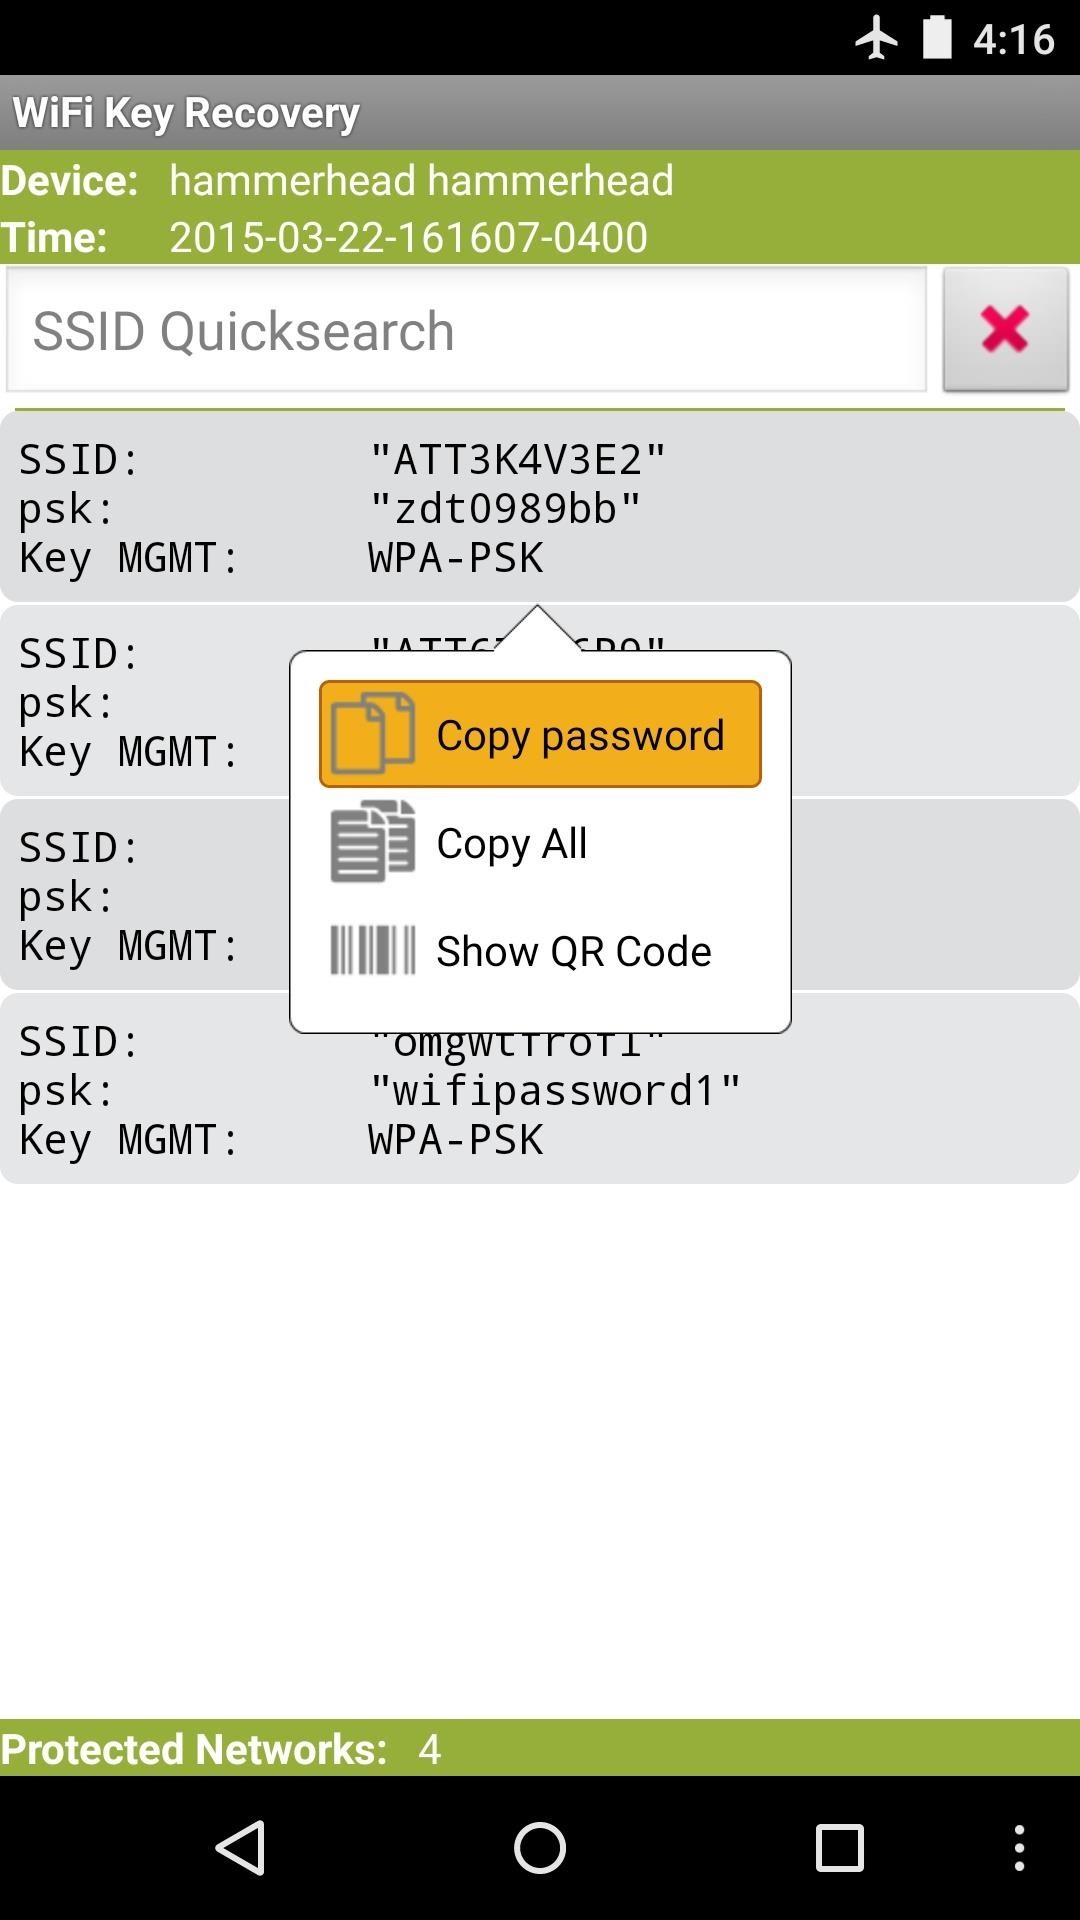 How to See Passwords for Wi-Fi Networks You've Connected Your Android Device To